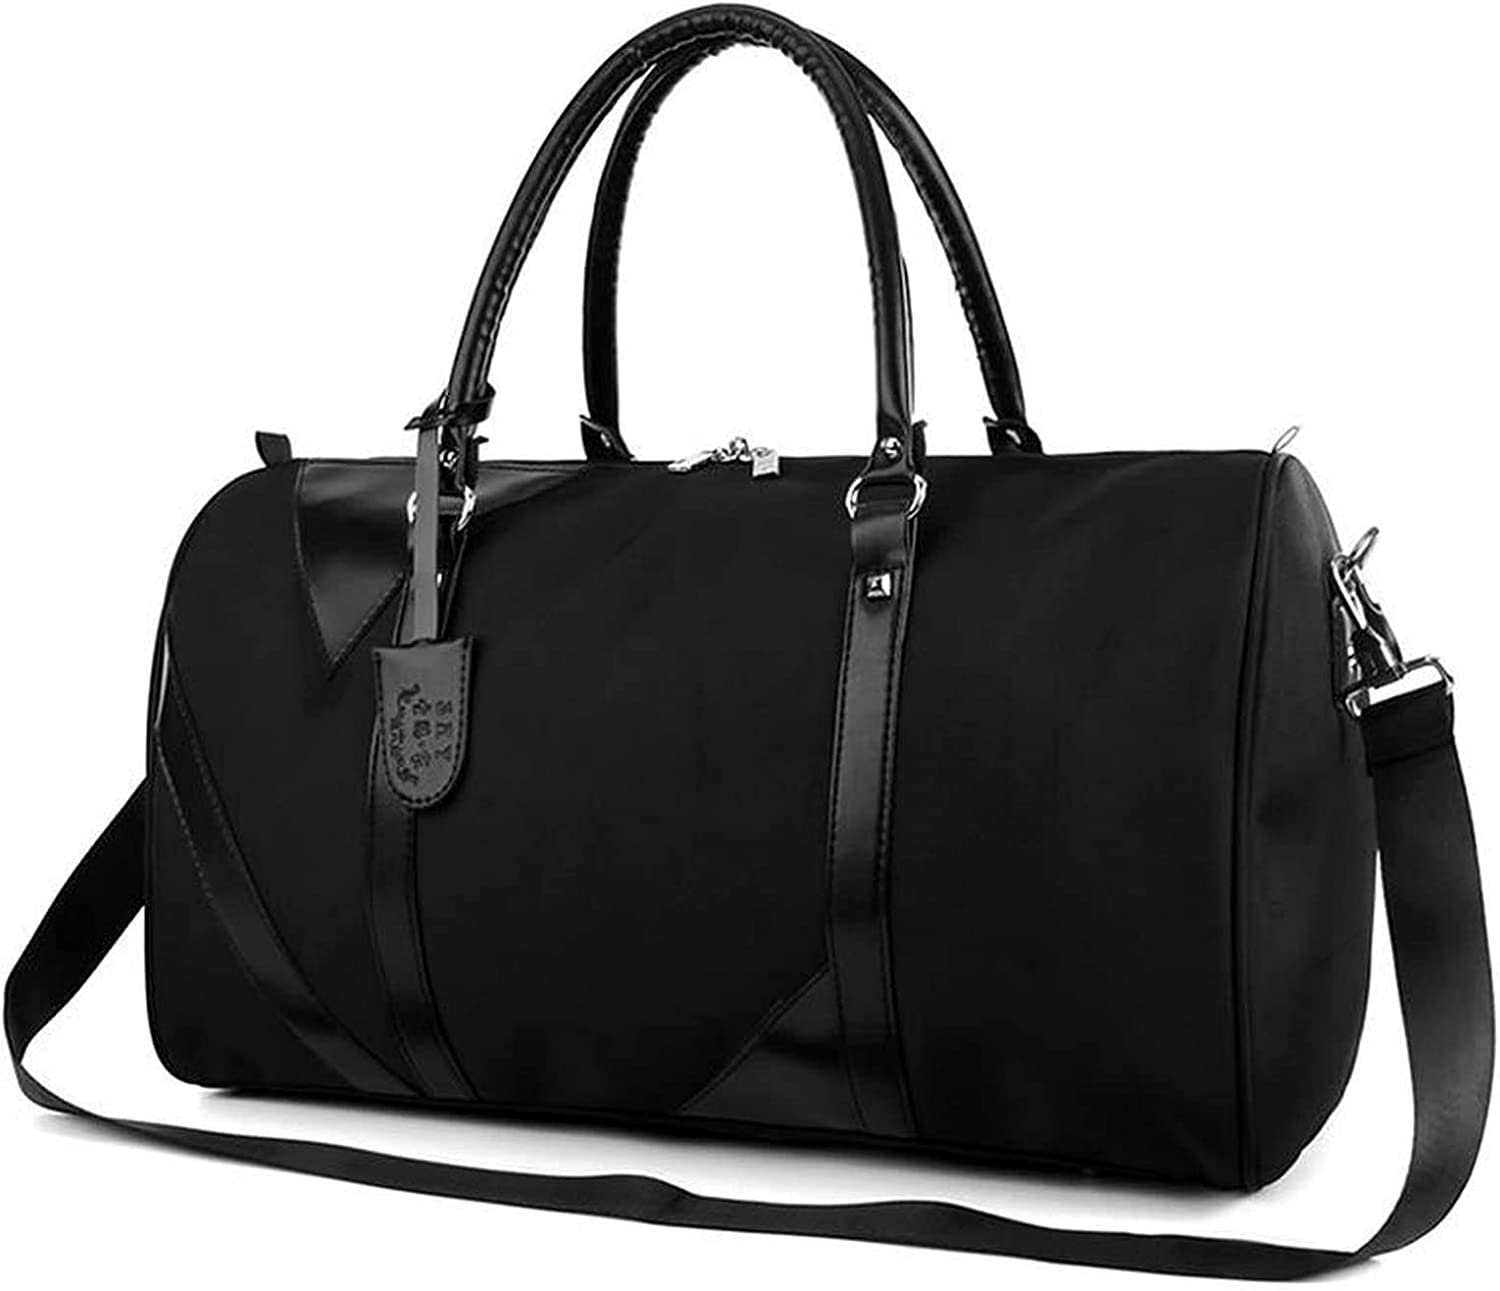 YXACETX Gym Bag Multifunctional New Special price for a limited time York Mall High Capacity Duffel Travel